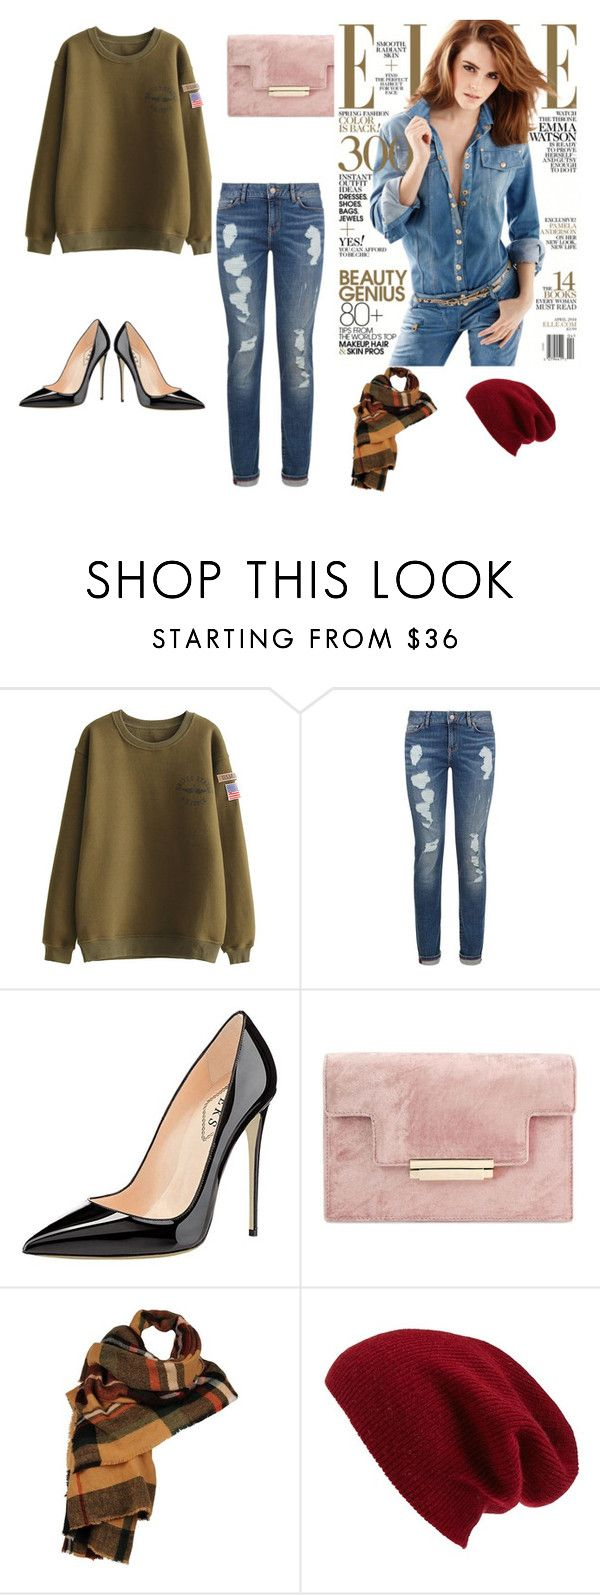 """""""Women's fashion"""" by room140701 ❤ liked on Polyvore featuring Tommy Hilfiger, Wilsons Leather and Halogen"""